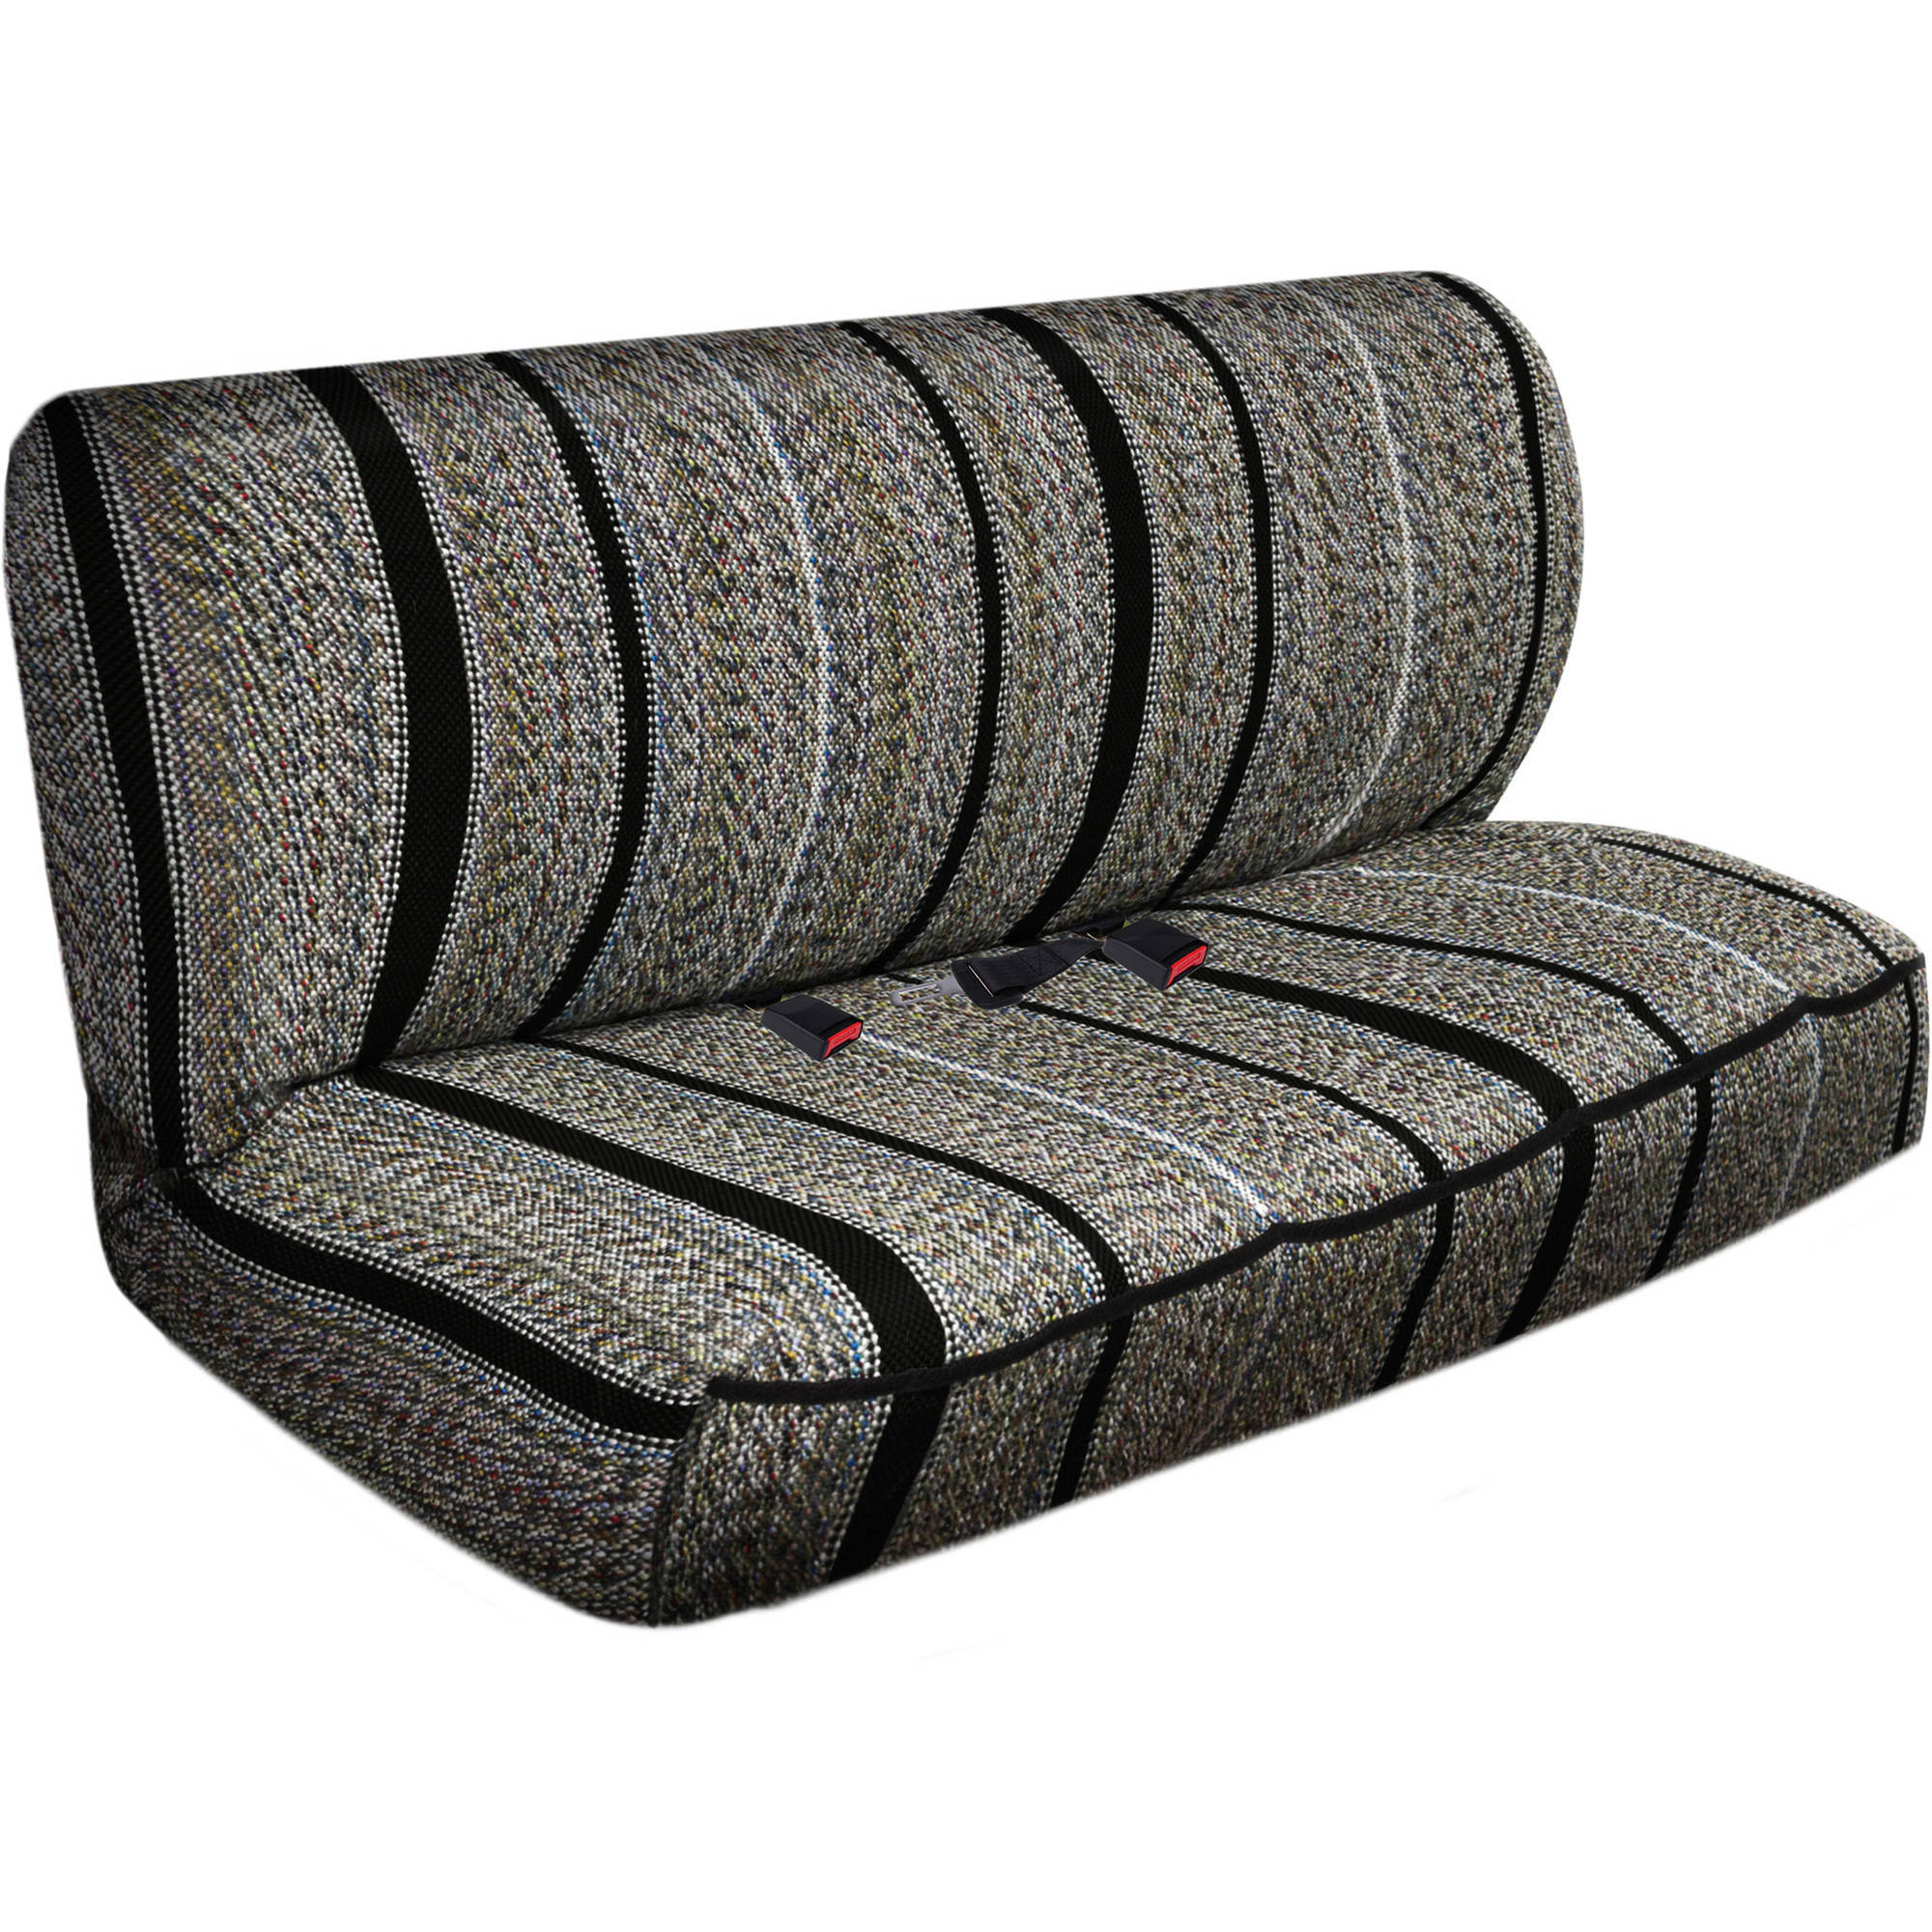 OxGord 2-Piece Full Size Heavy Duty Saddle Blanket Bench Seat Covers, Black